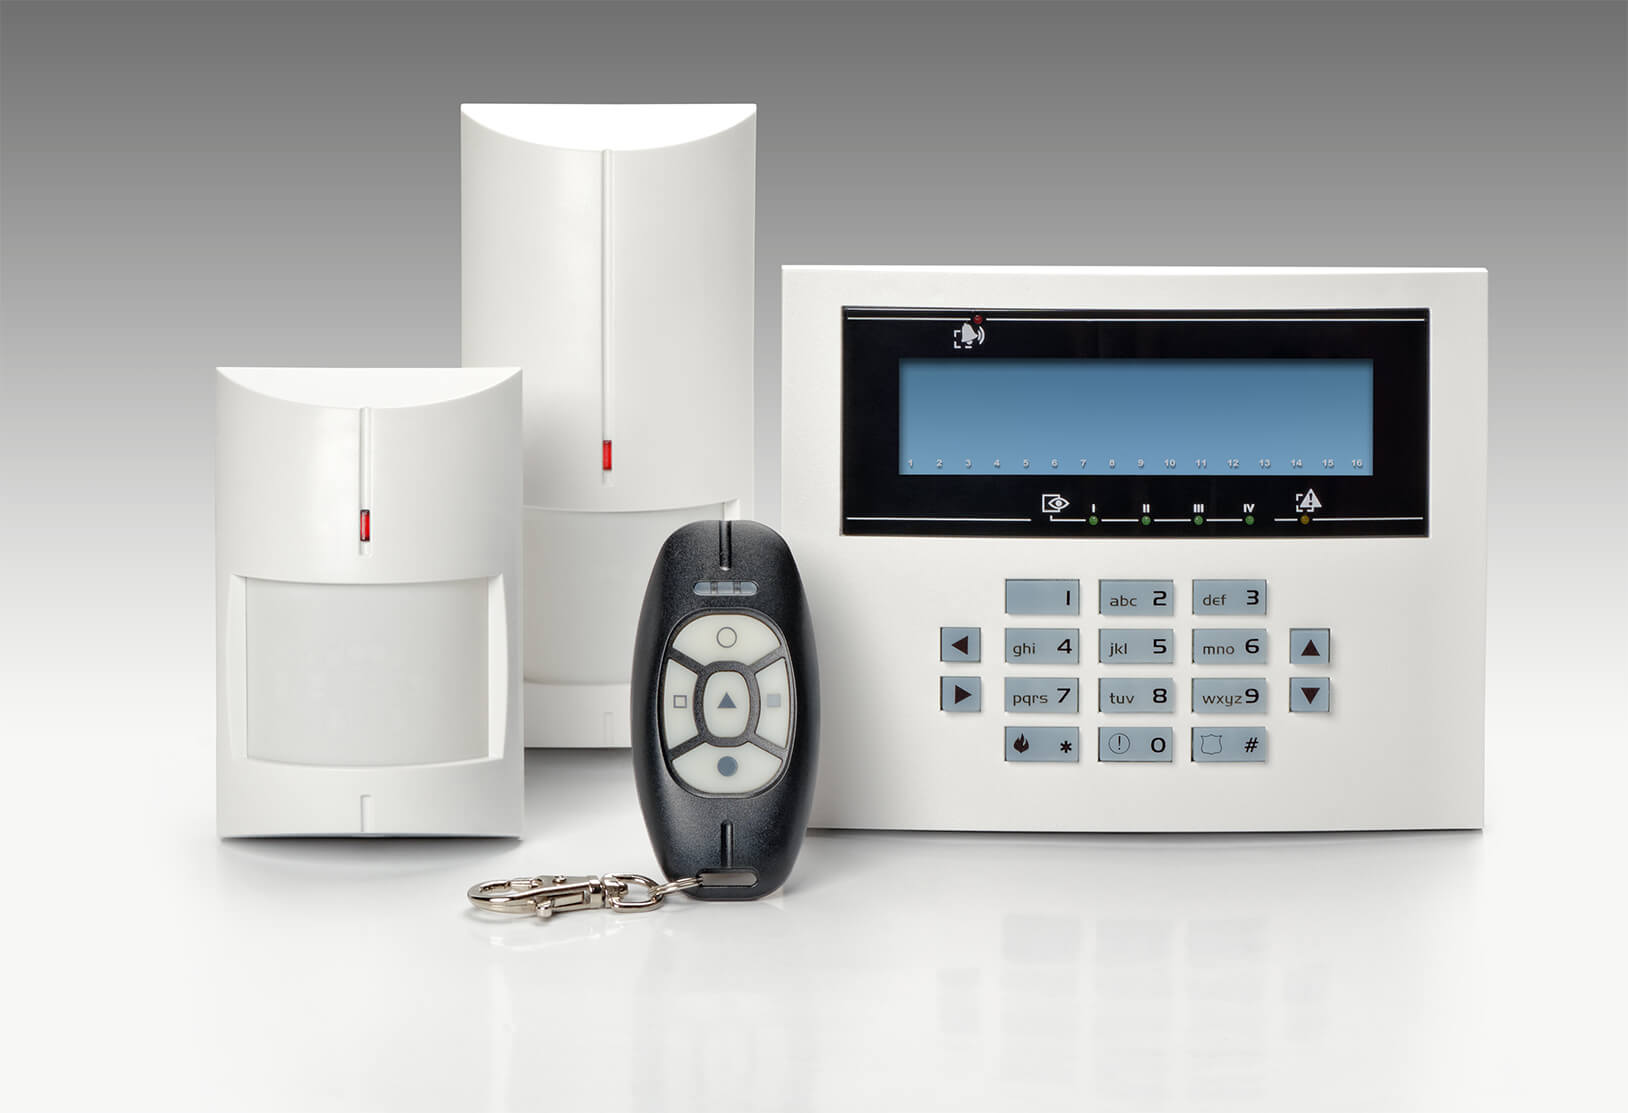 Commercial Burglar Alarms For Business in Camberwell SE14  - Local Camberwell SE14 burglar alarm company.Call 02078872244 - Dedicated to Safety & Security. Companies, shops and homes ..